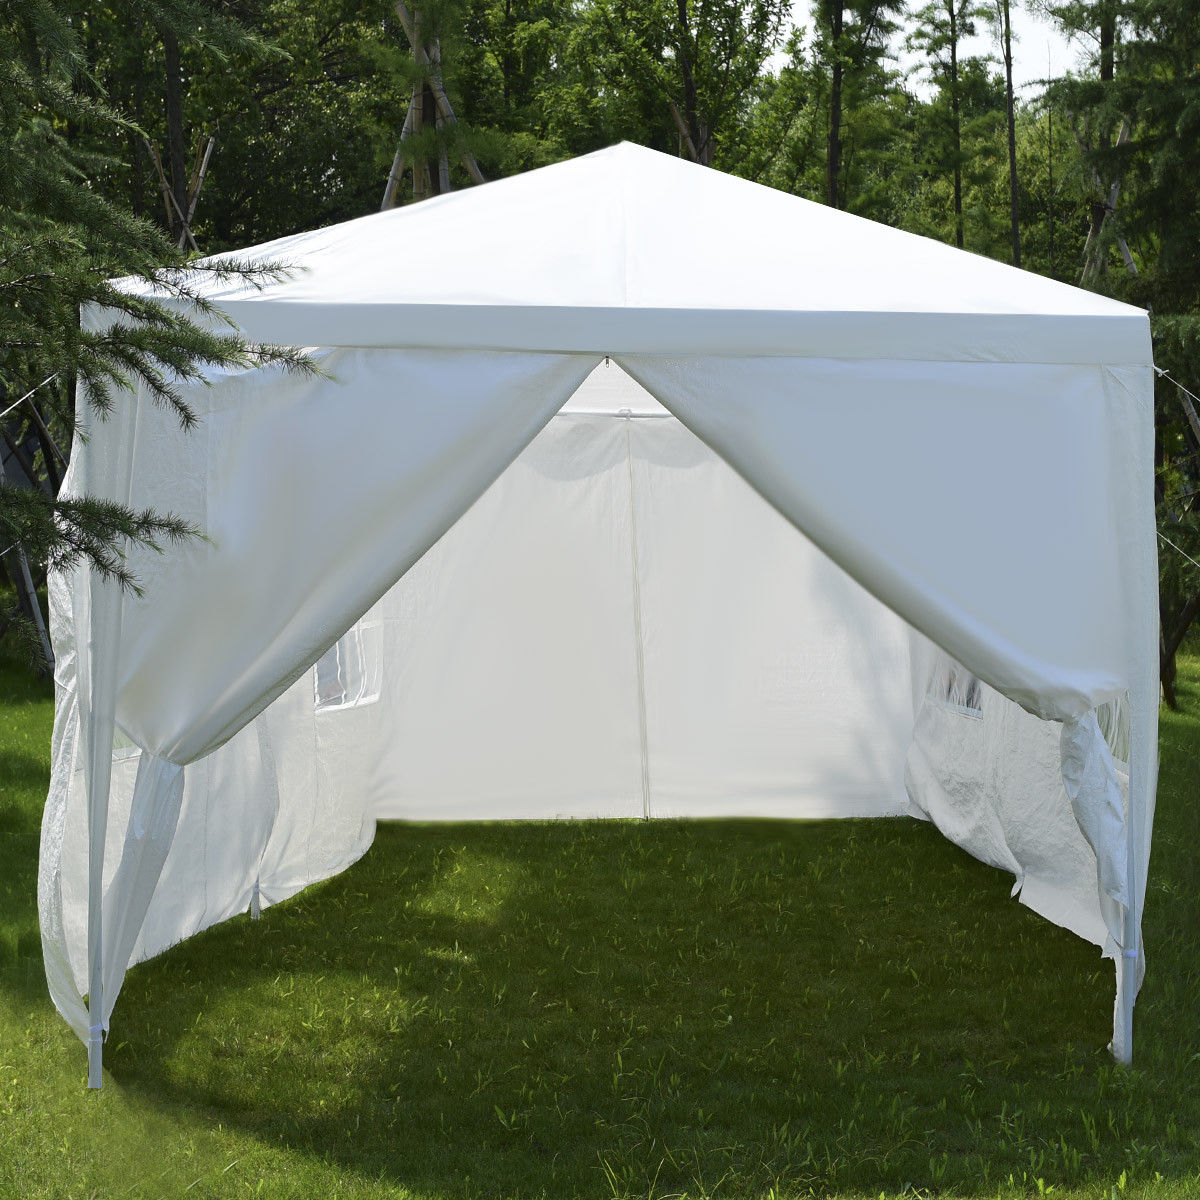 Wedding Tent Canopy Party 10'x20' Heavy Duty Gazebo Cater Event W/ Side Walls - image 8 of 10